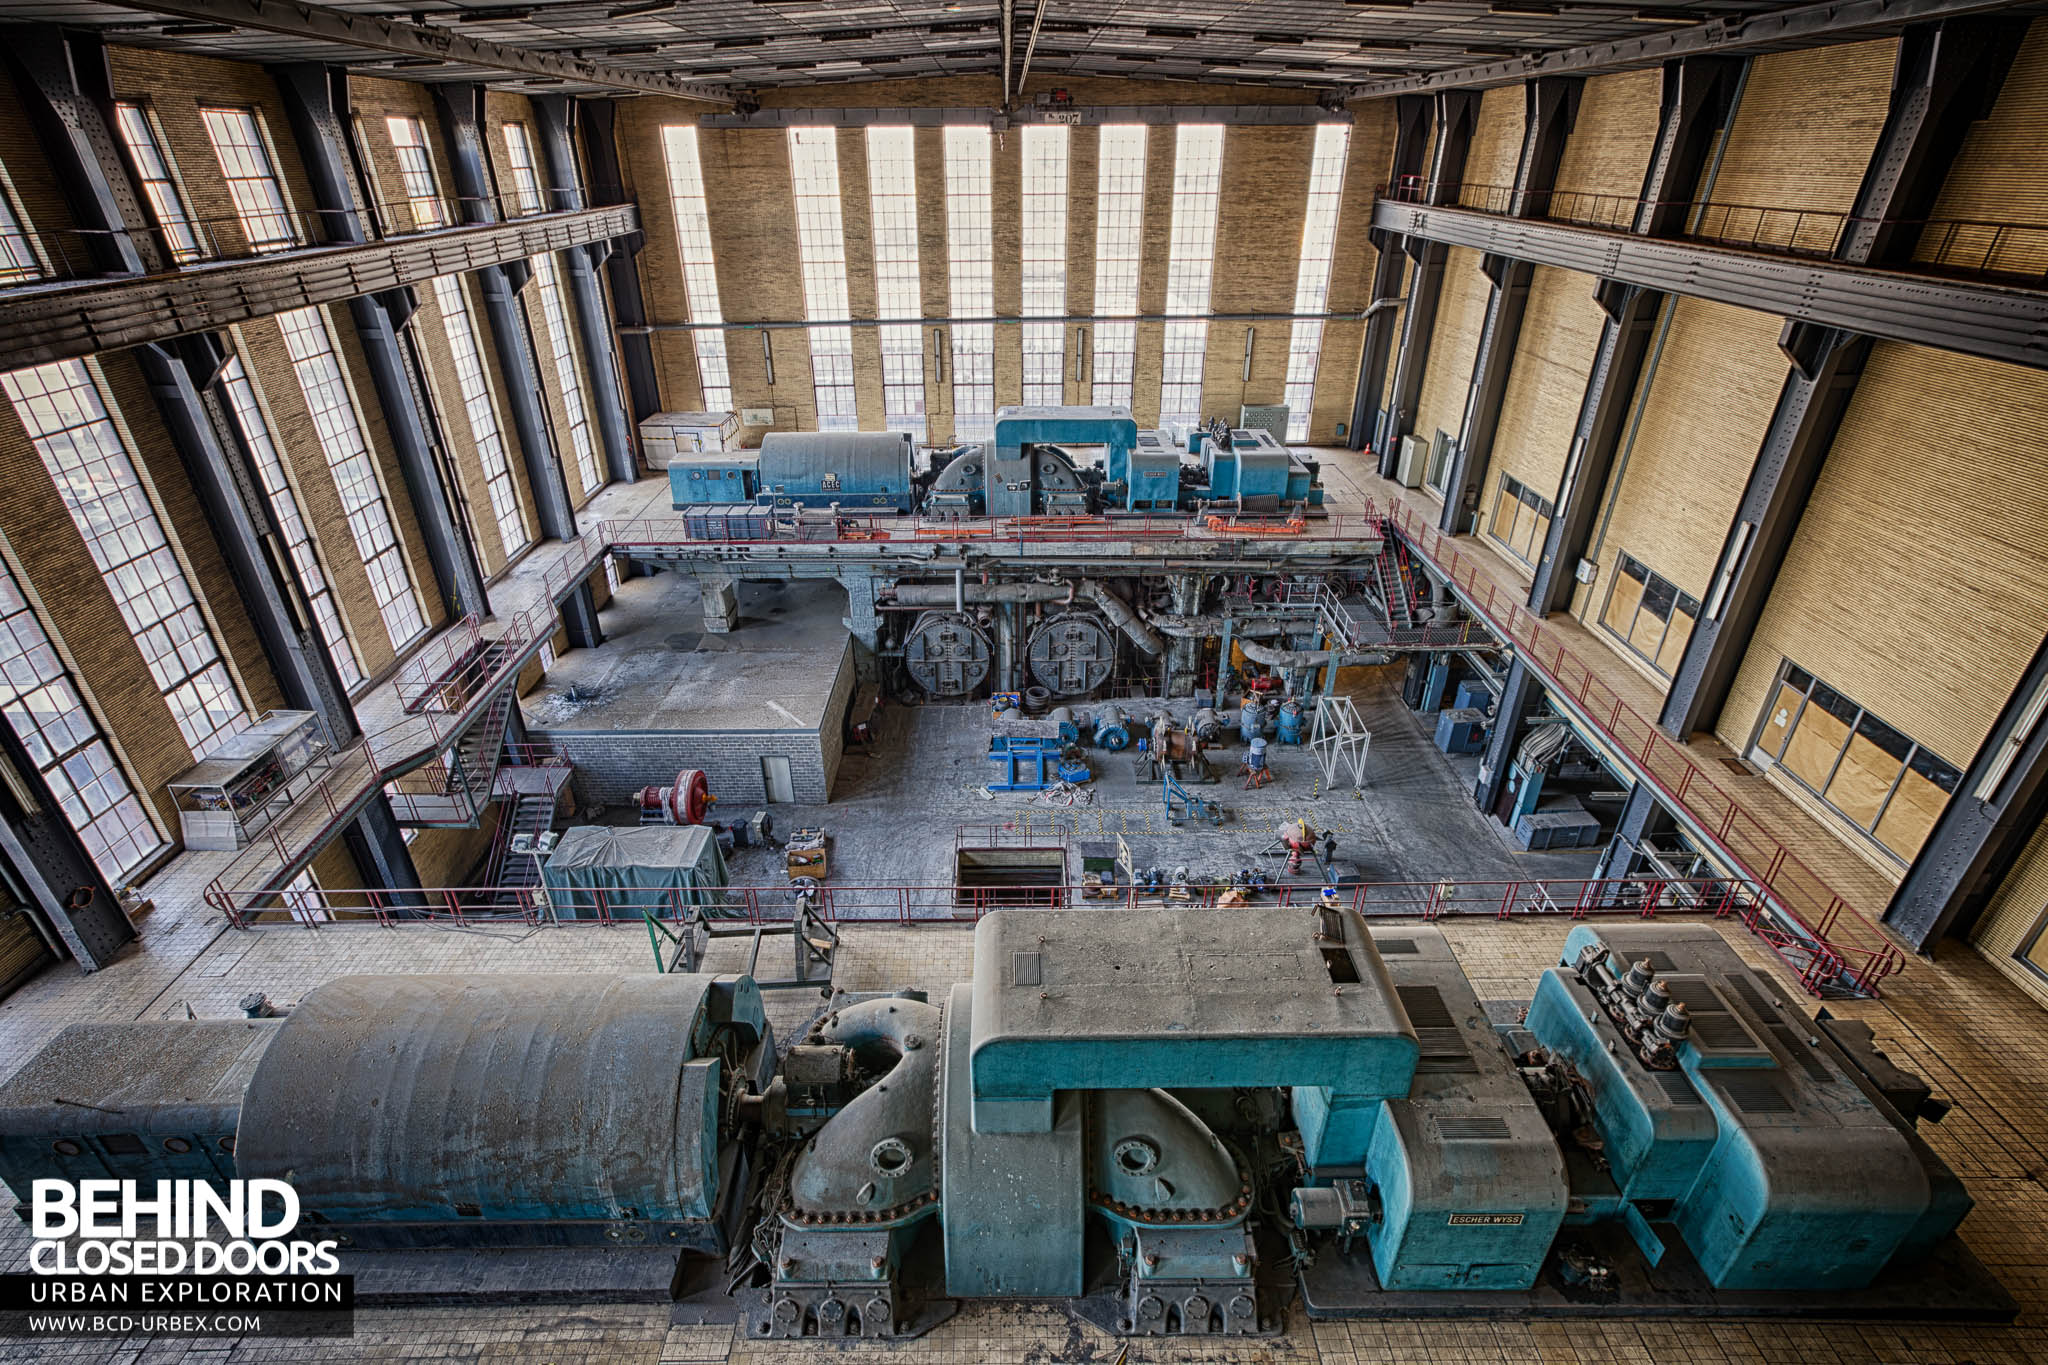 Gigawatt Power Plant – Turbine hall overview looking the other way